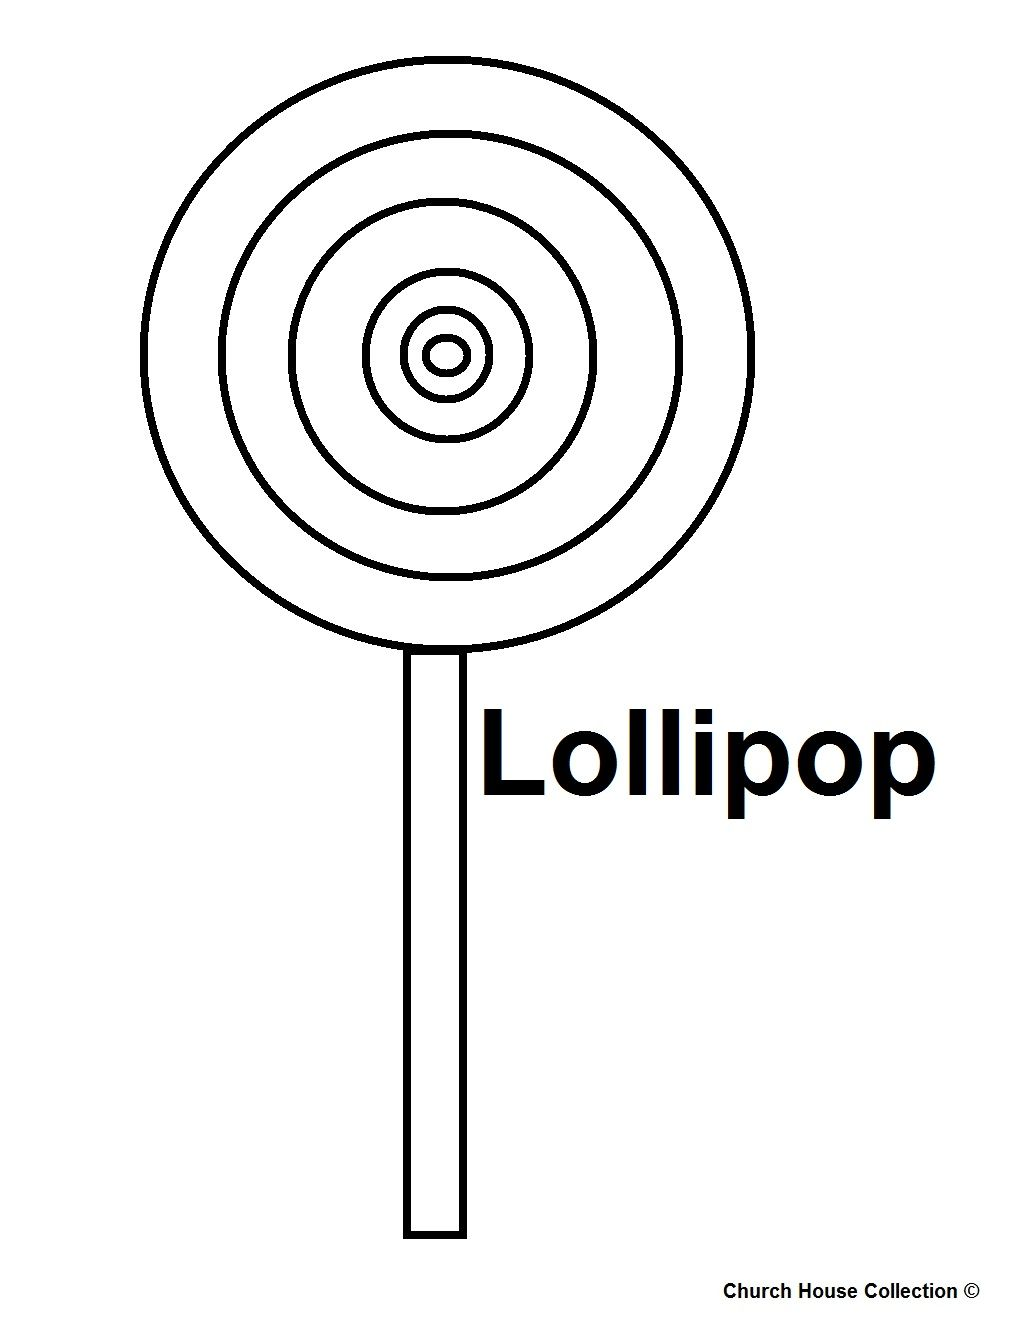 Lollipop Coloring Pages For Kids Printable Coloring Sheet